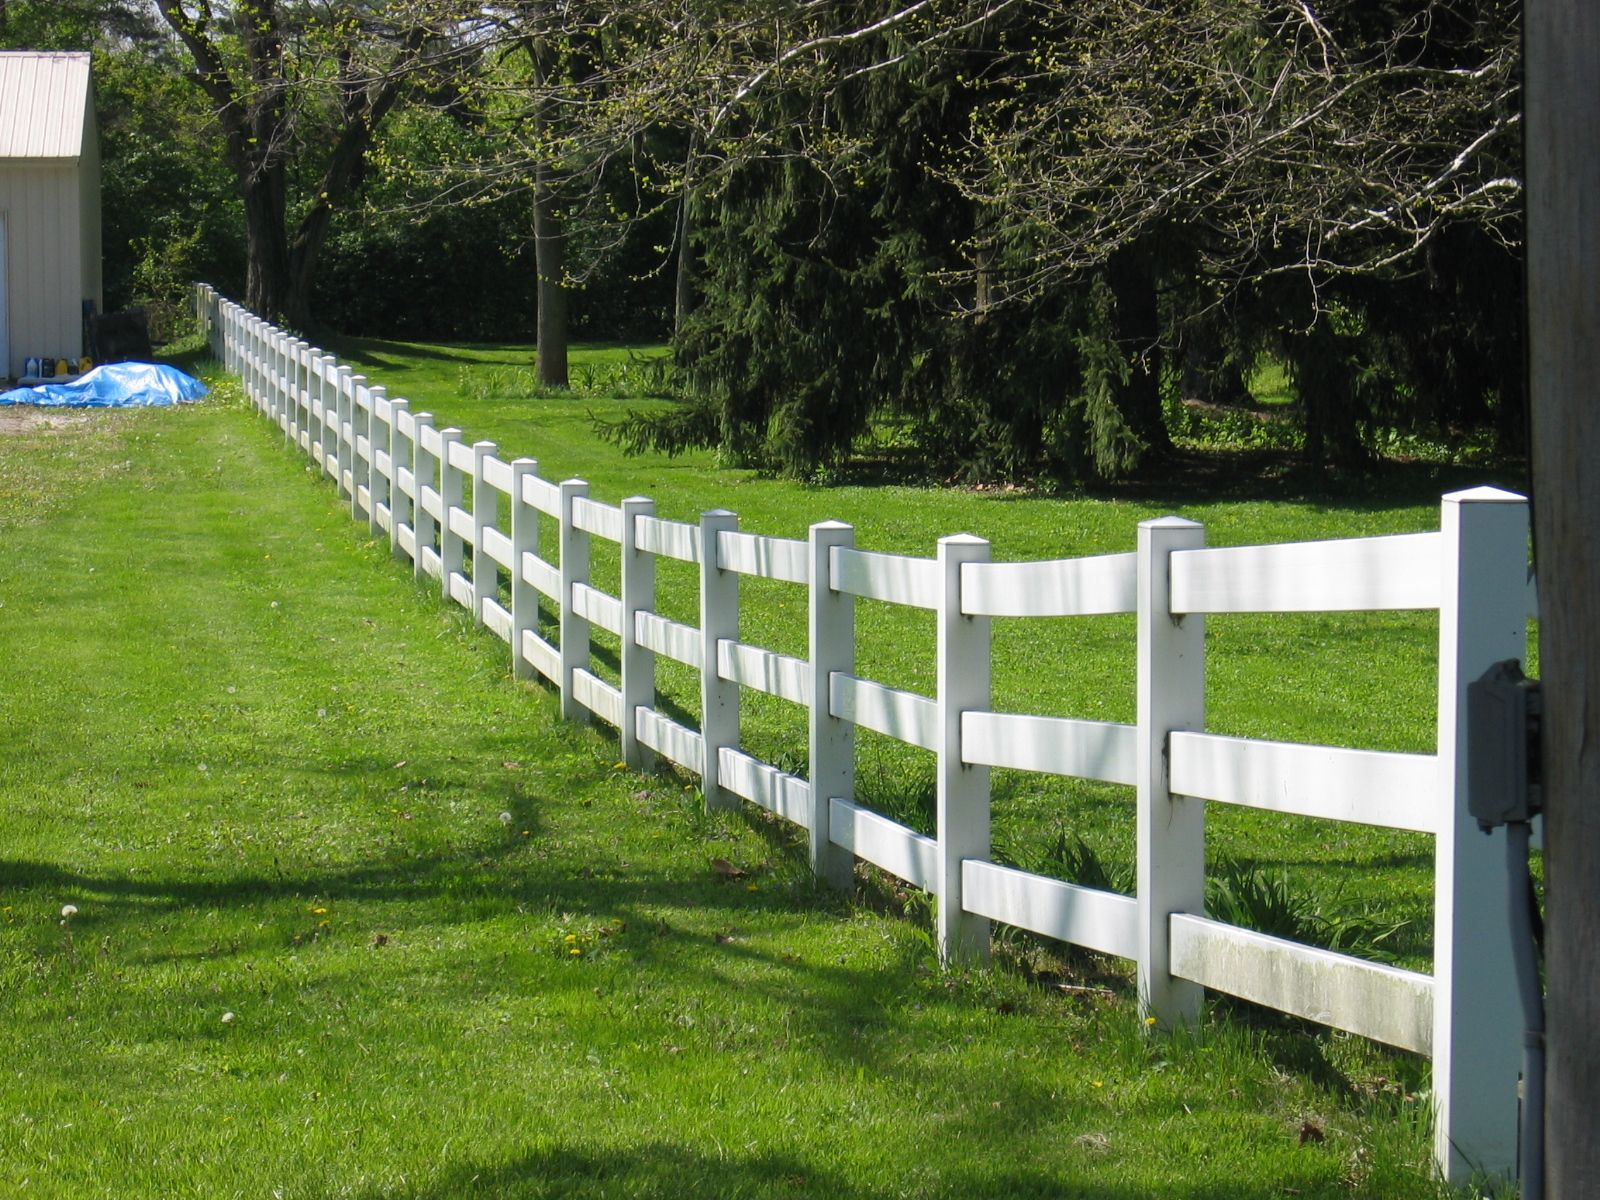 Selling Used Pvc Fence How Much Is A Shadow Box Fence Vinyl Fence Cost Horse Fencing Vinyl Fence